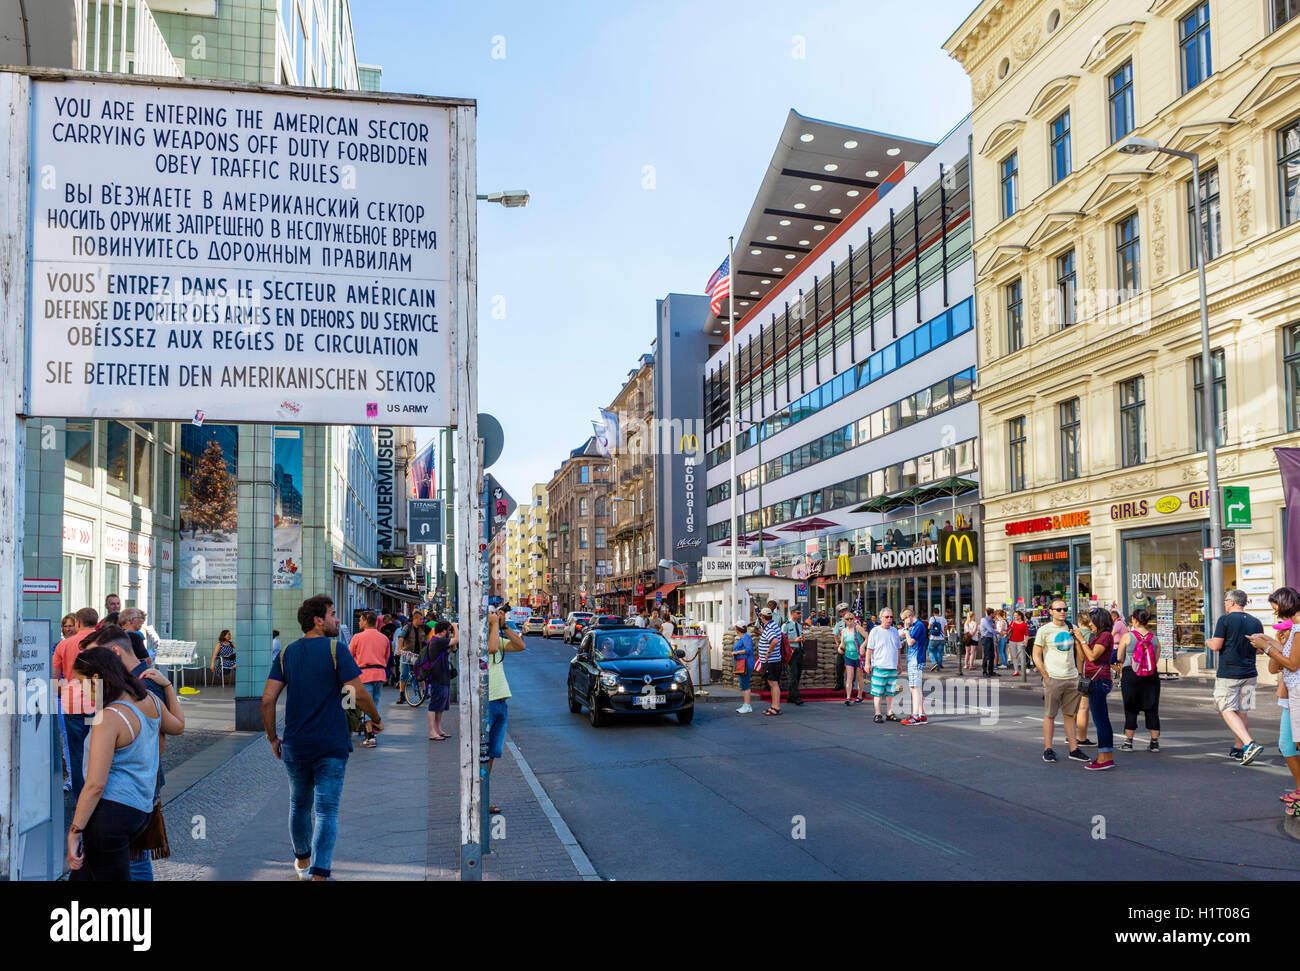 Tourists at the site of Checkpoint Charlie, Berlin, Germany - Stock Image